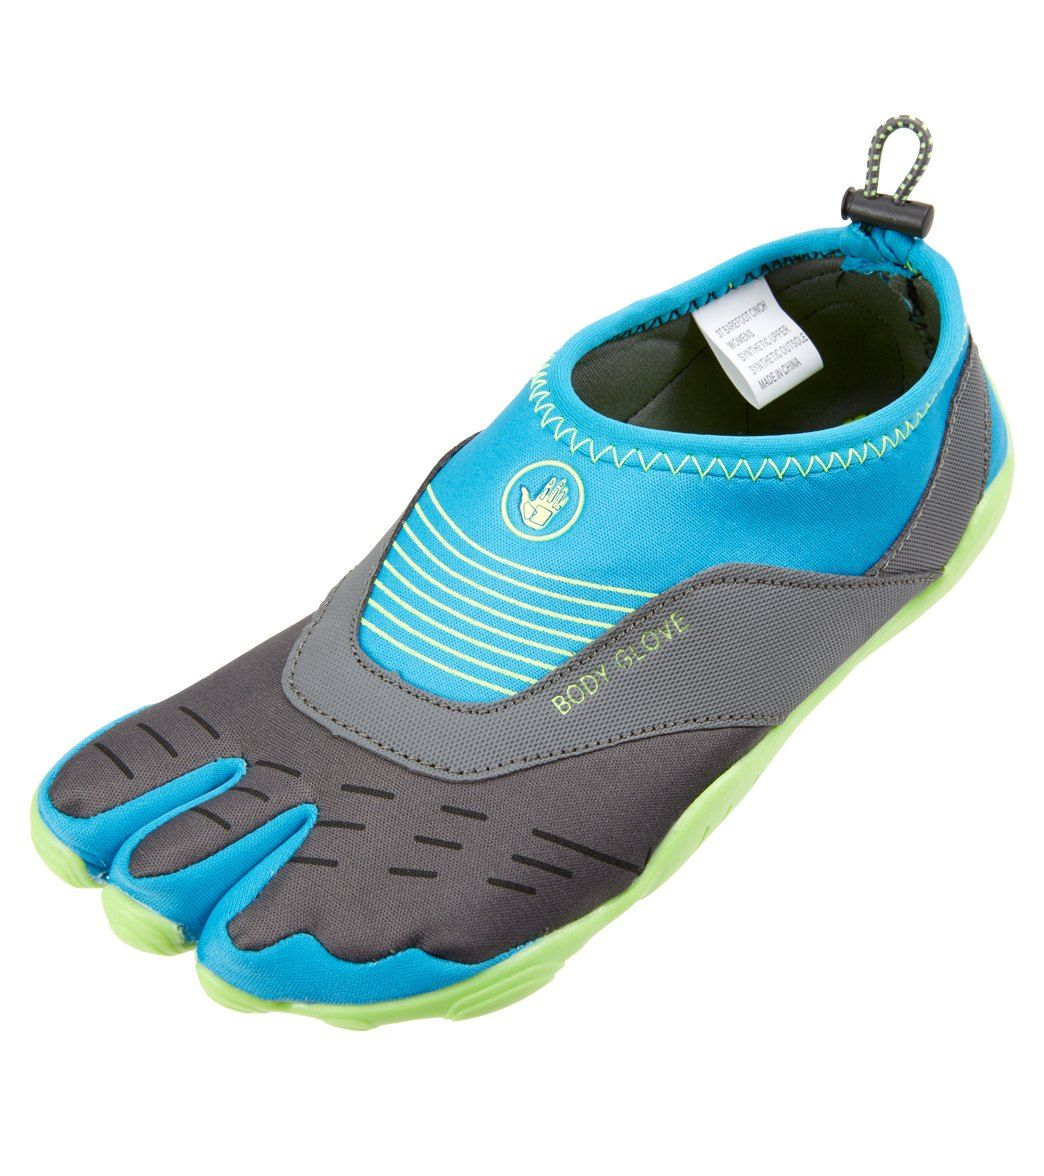 80777b4a41f0 Body Glove Women s 3T Barefoot Cinch Water Shoe at SwimOutlet.com – The  Web s most popular swim shop